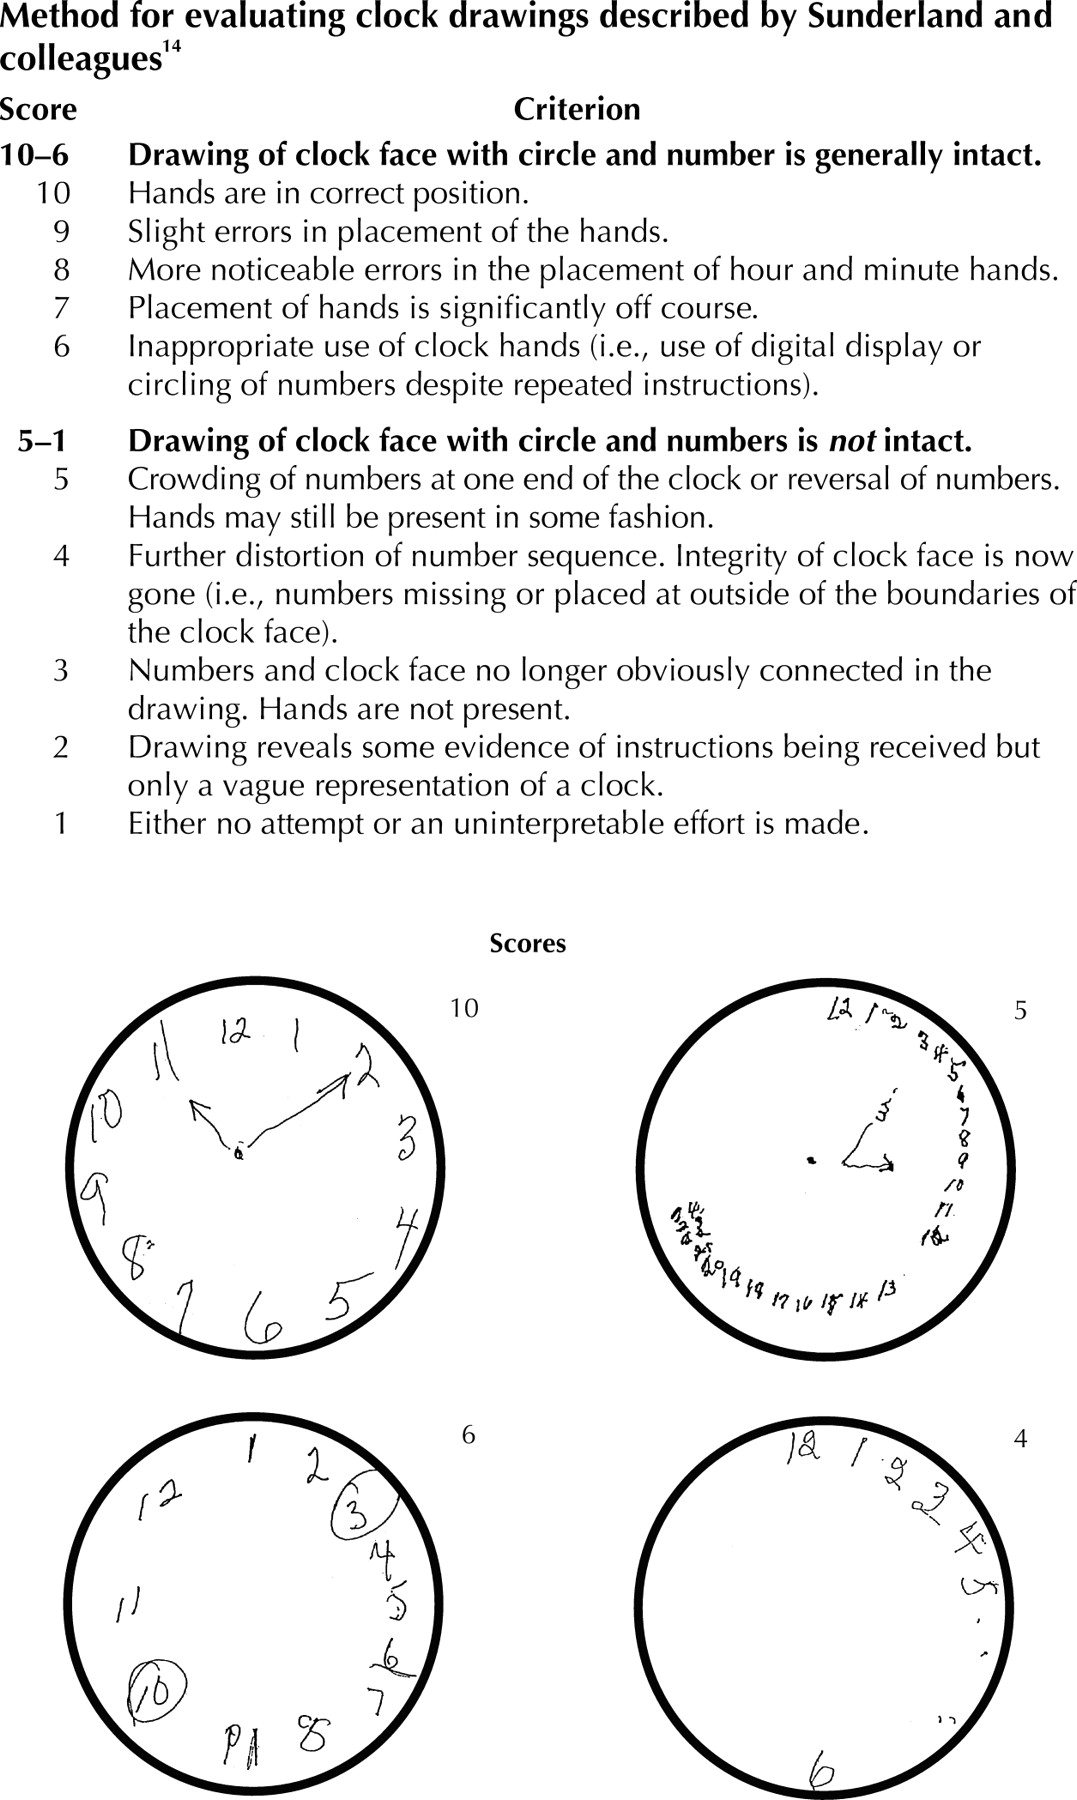 The Value Of Clock Drawing In Identifying Executive Cognitive